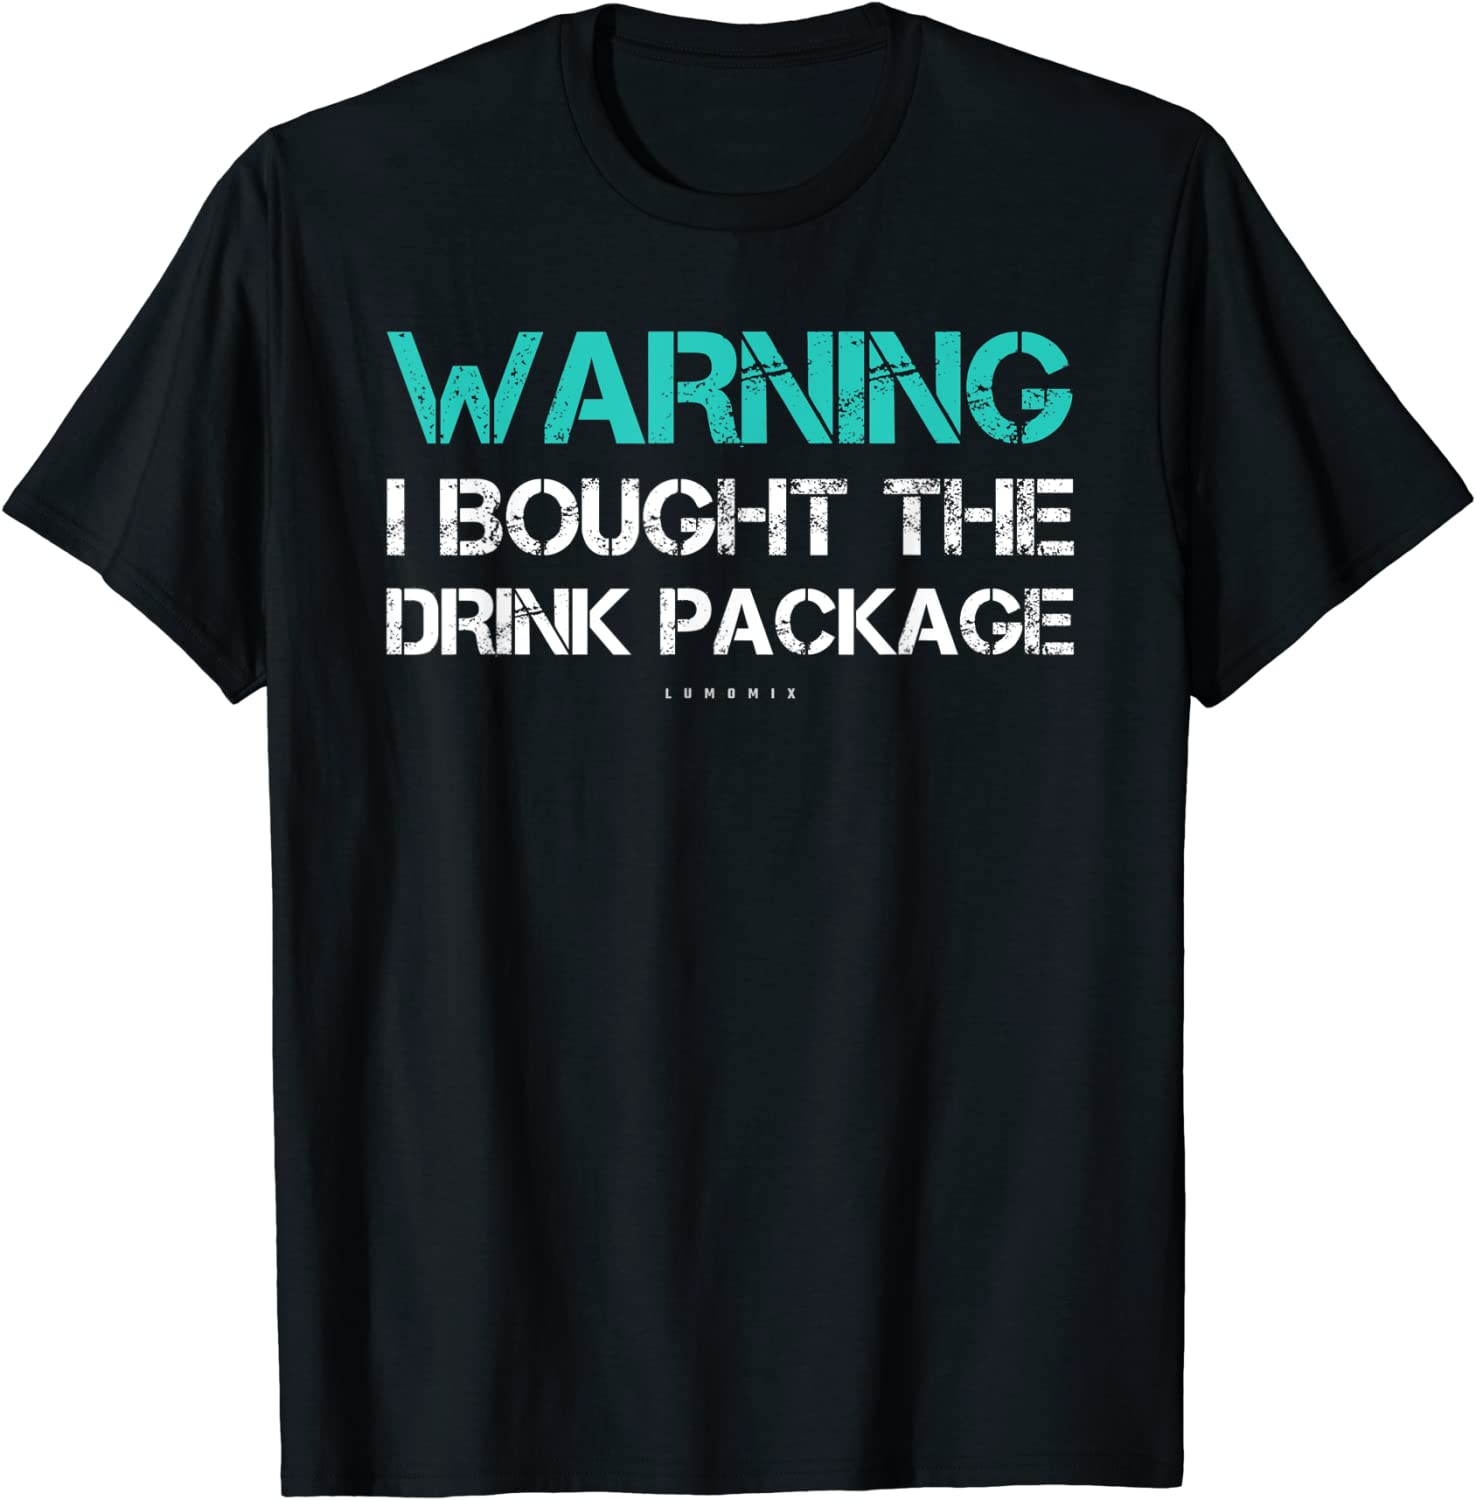 Warning I Bought The Drink Package Shirt Funny Cruise Shirts T-Shirt